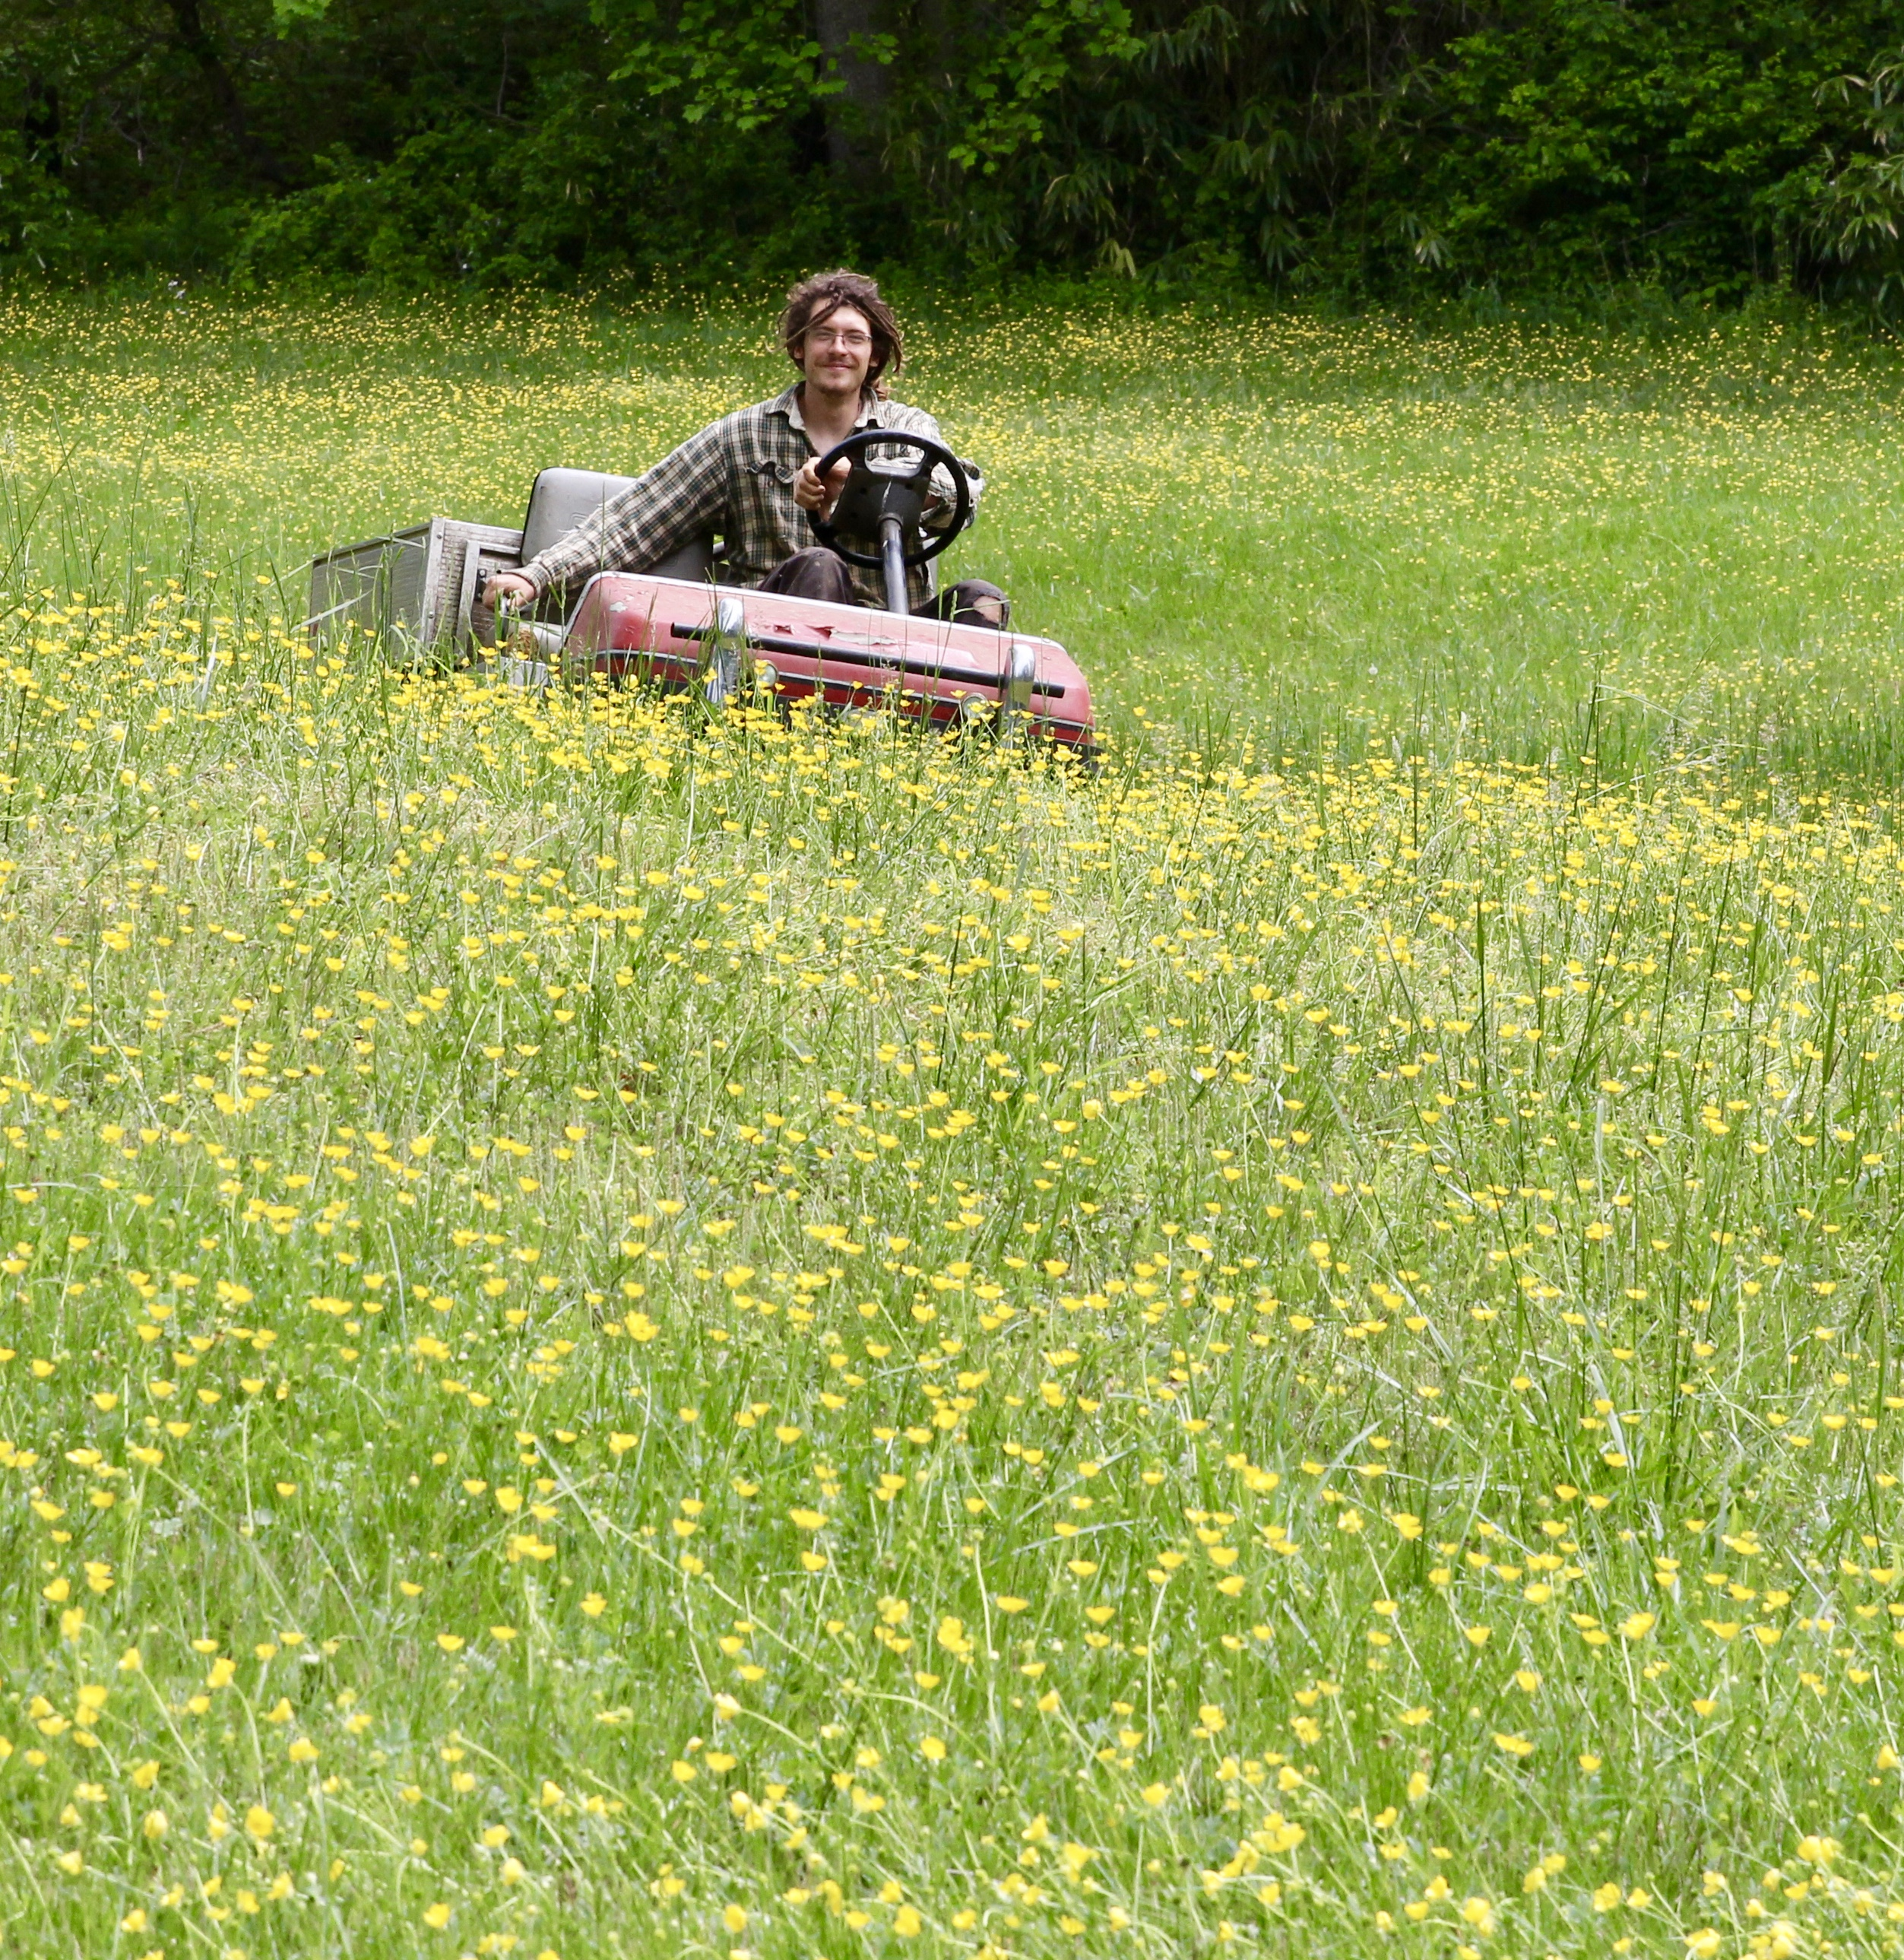 Jared in the buttercups gfg – Version 2